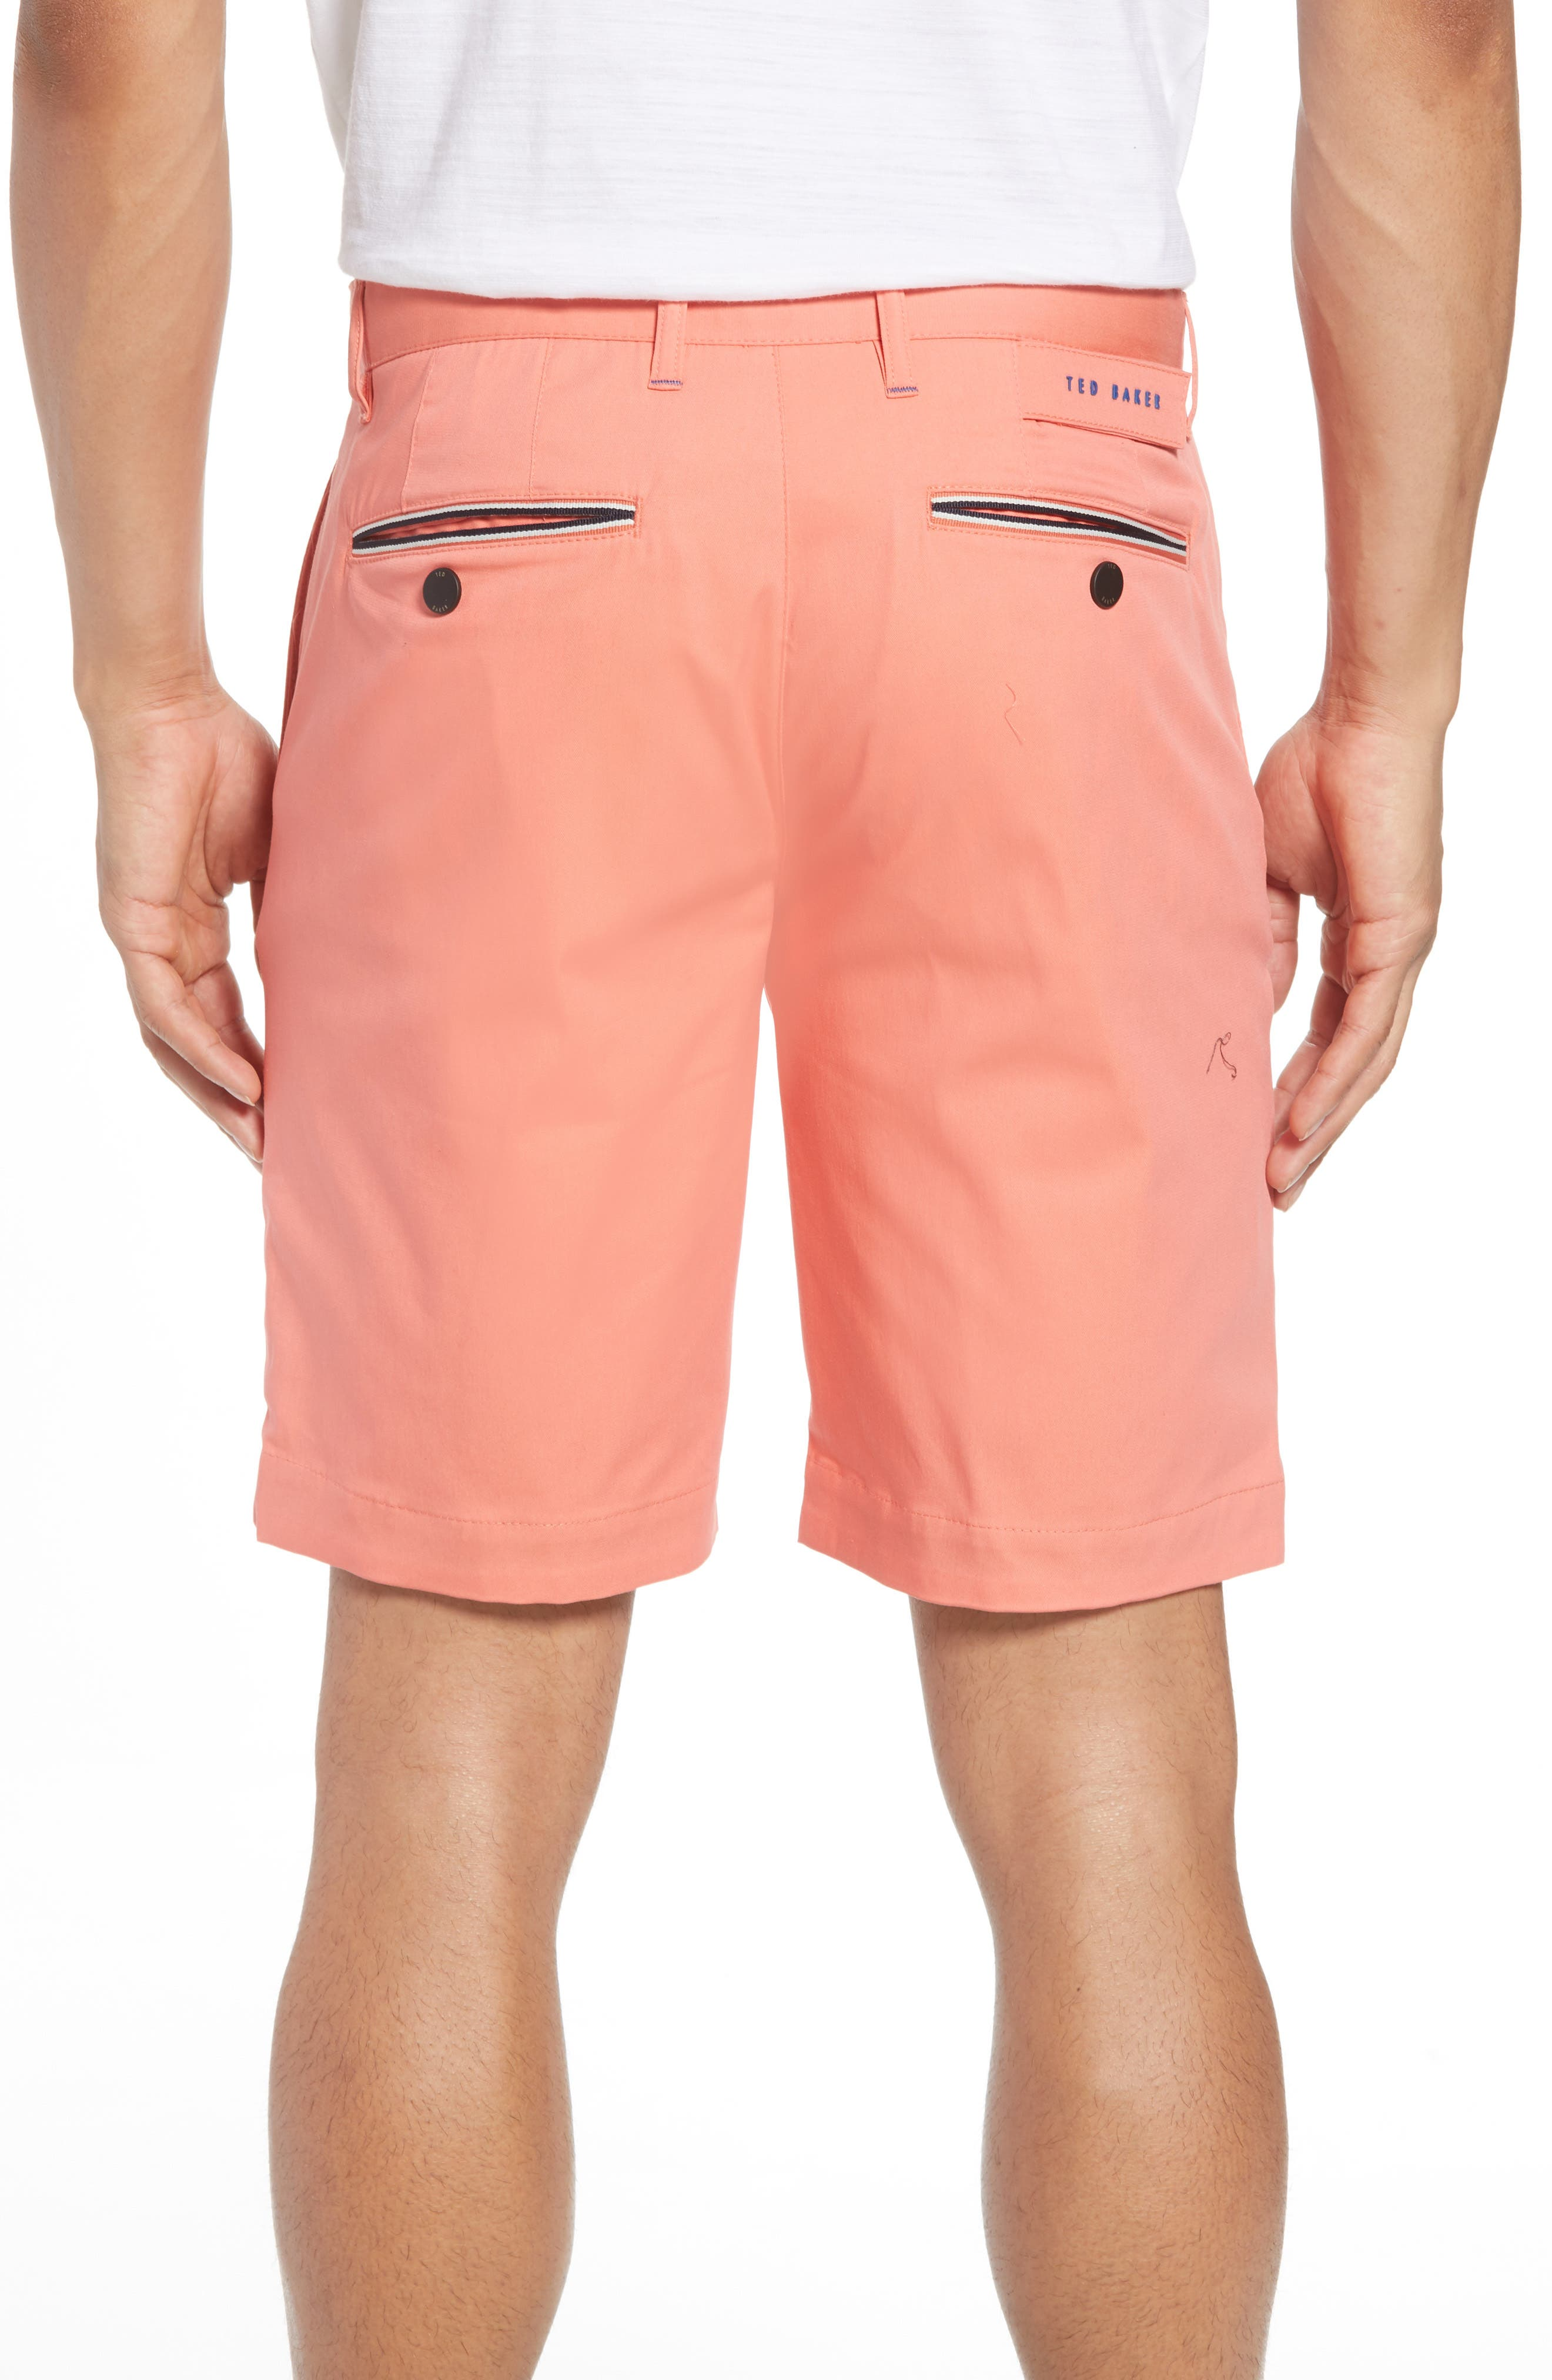 Twopar Flat Front Shorts,                             Alternate thumbnail 2, color,                             Coral